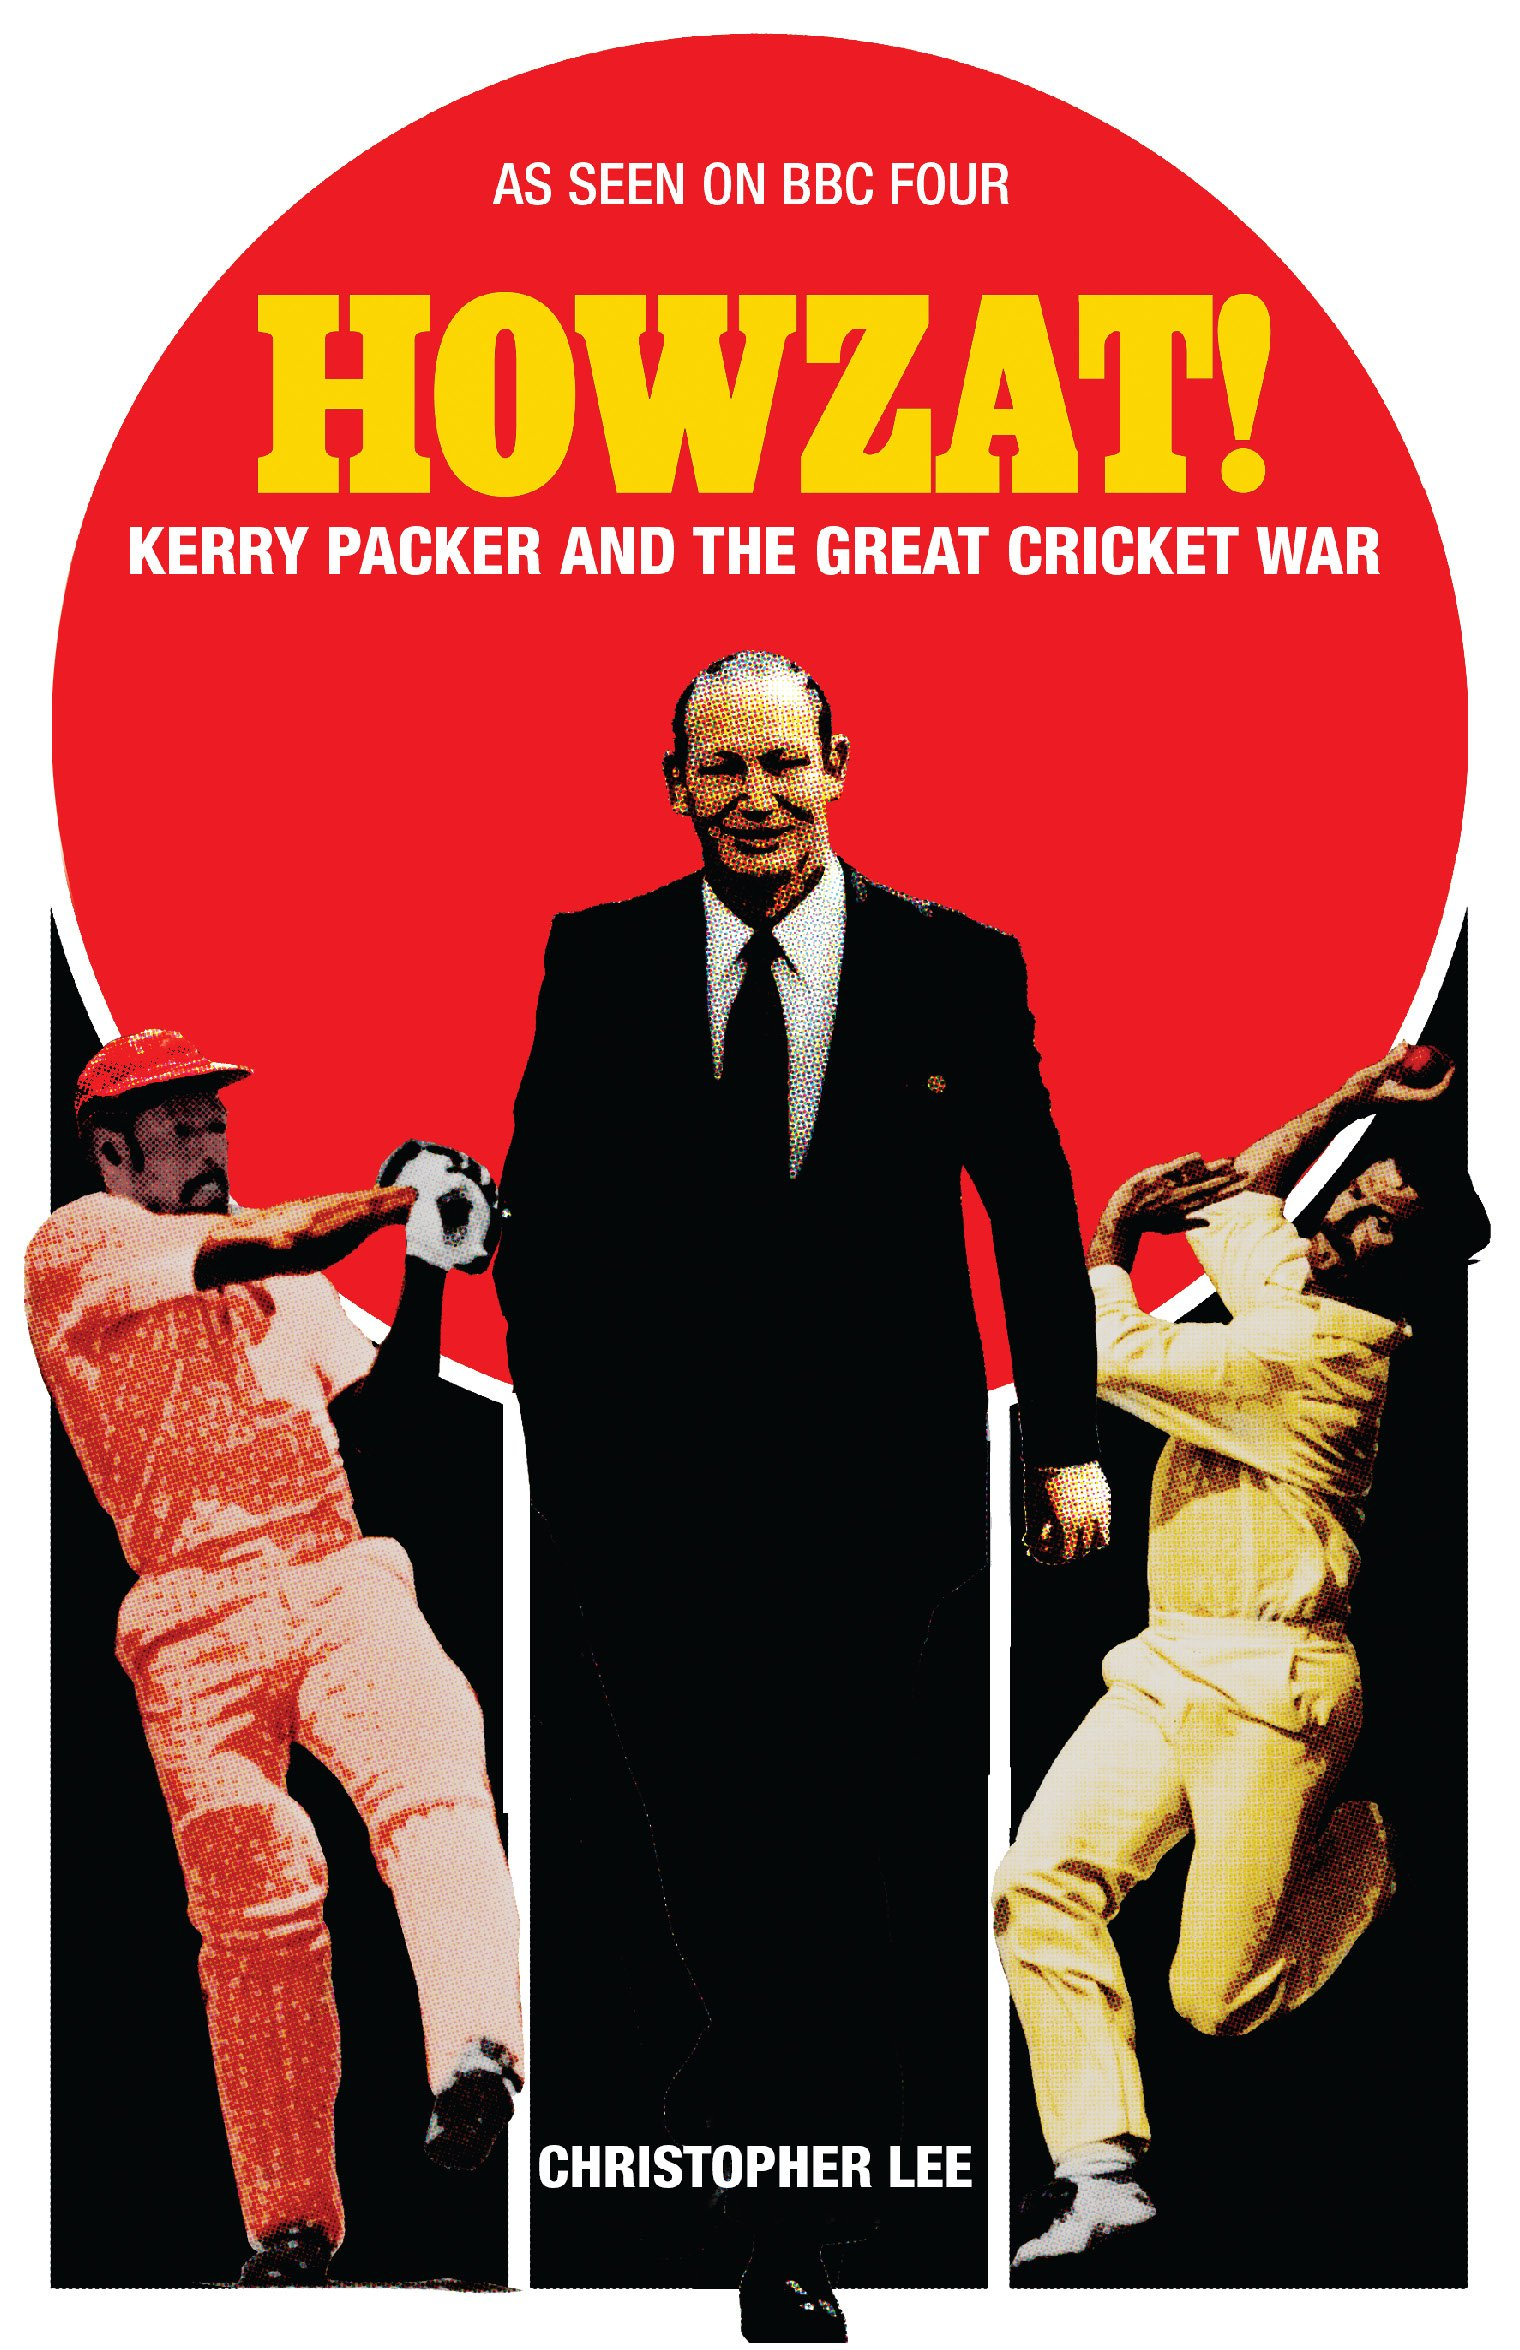 Image OfHowzat!: Kerry Packer And The Great Cricket War (English Edition)